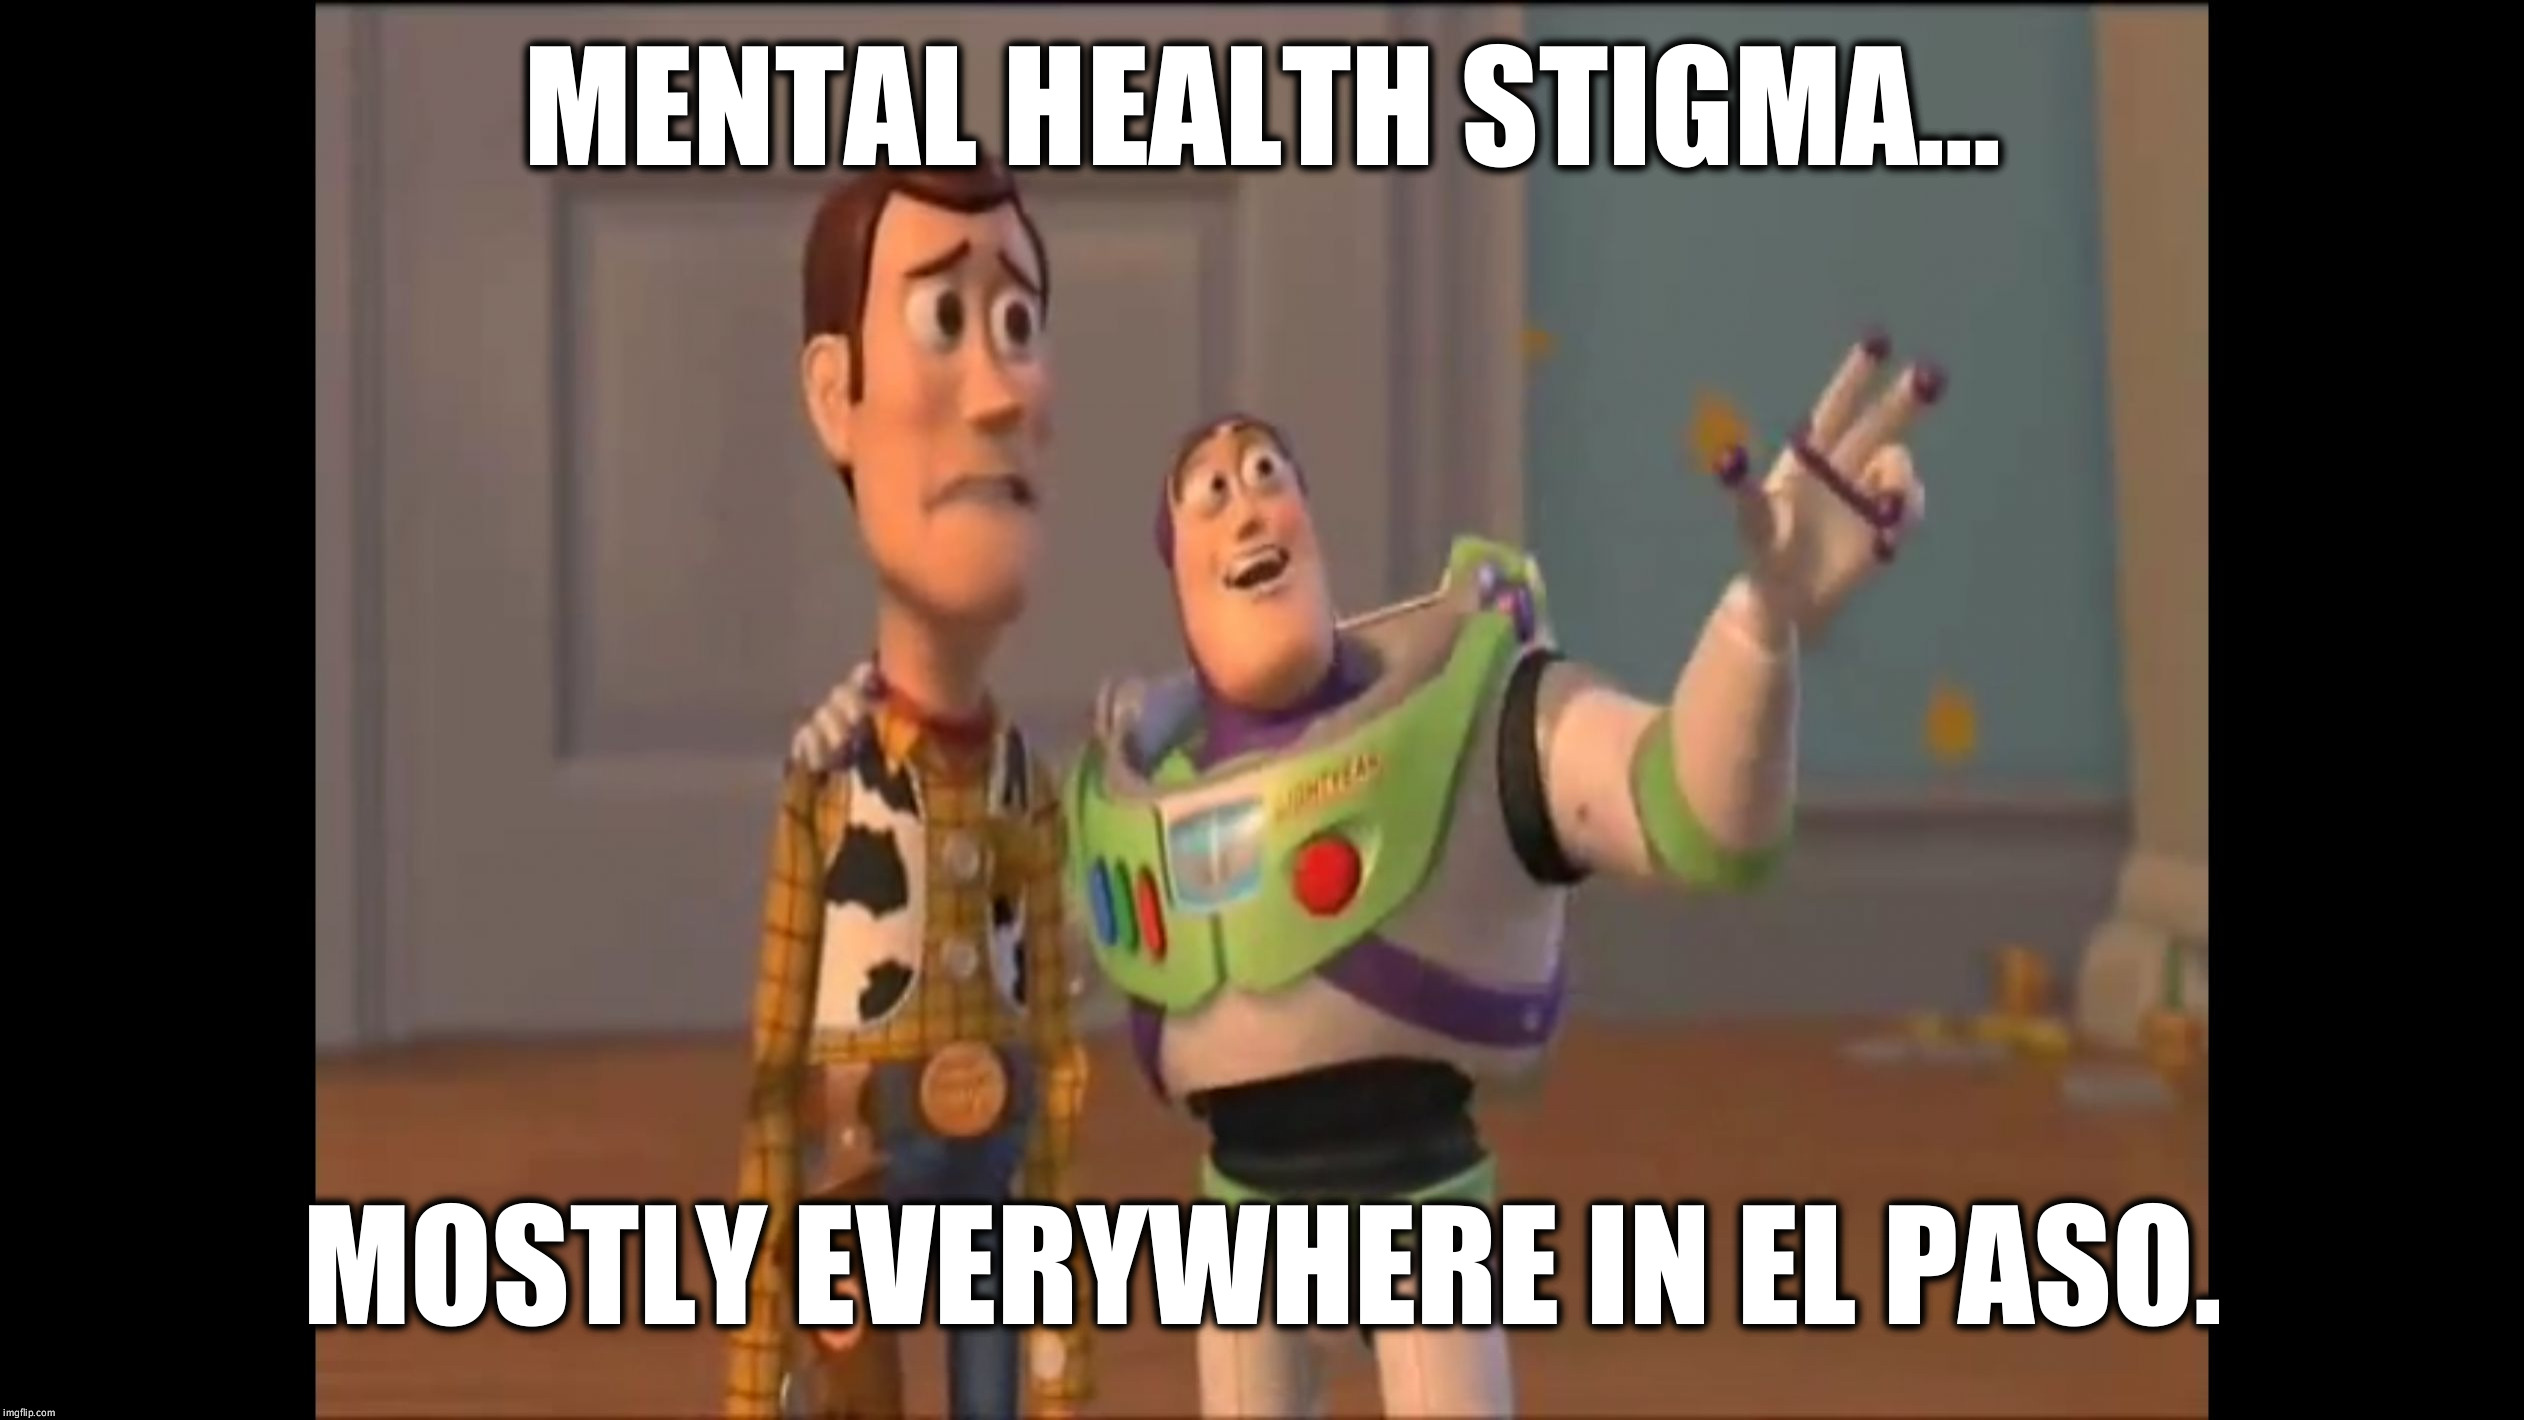 The worst Hell-Hole for Vets and Civilians. | MENTAL HEALTH STIGMA... MOSTLY EVERYWHERE IN EL PASO. | image tagged in woody and buzz 480-rez,mental,health,stigma,el paso,texas | made w/ Imgflip meme maker